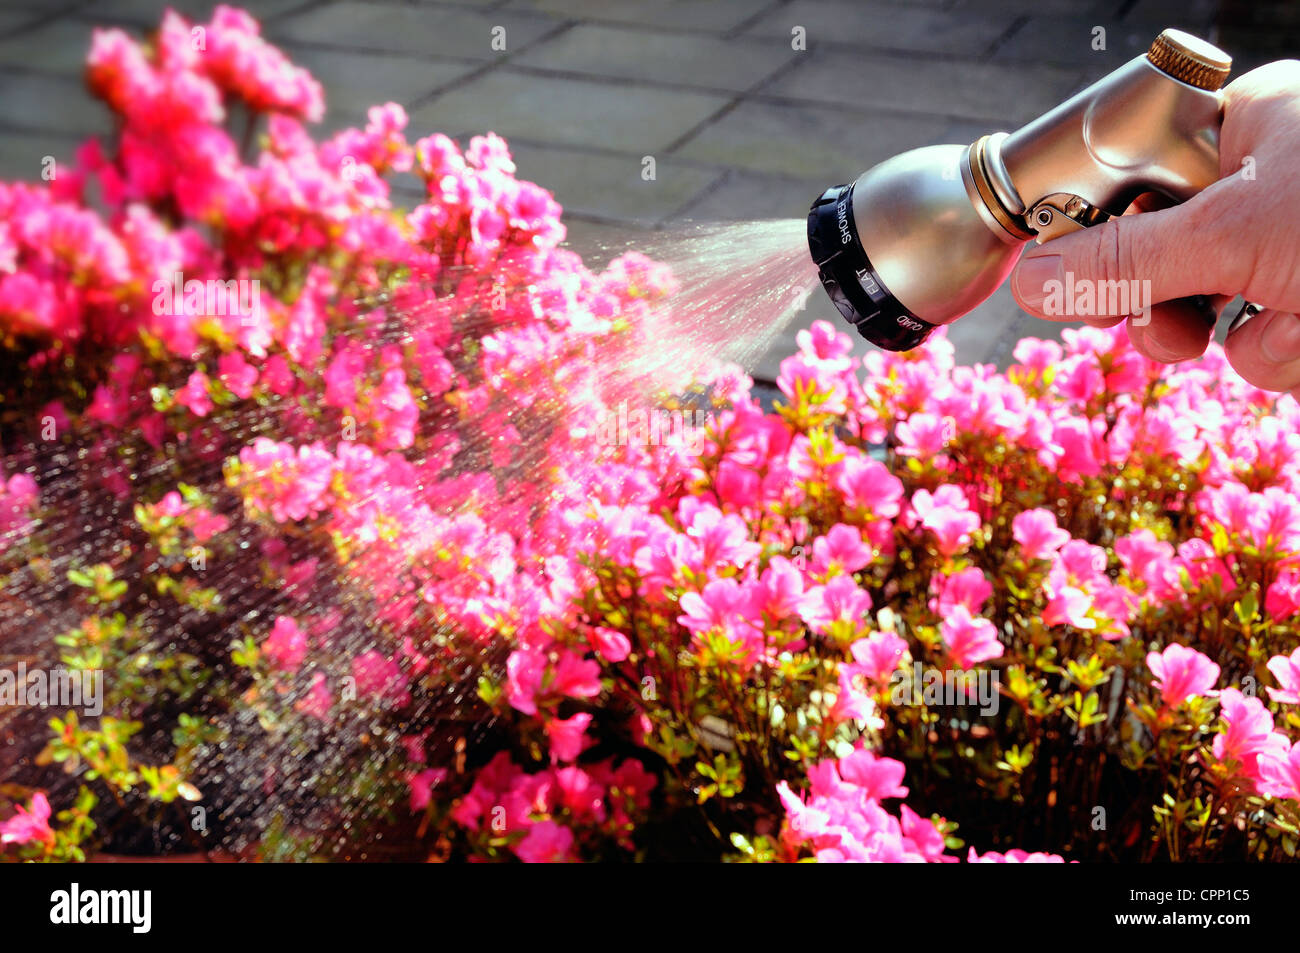 watering the flowers - Stock Image